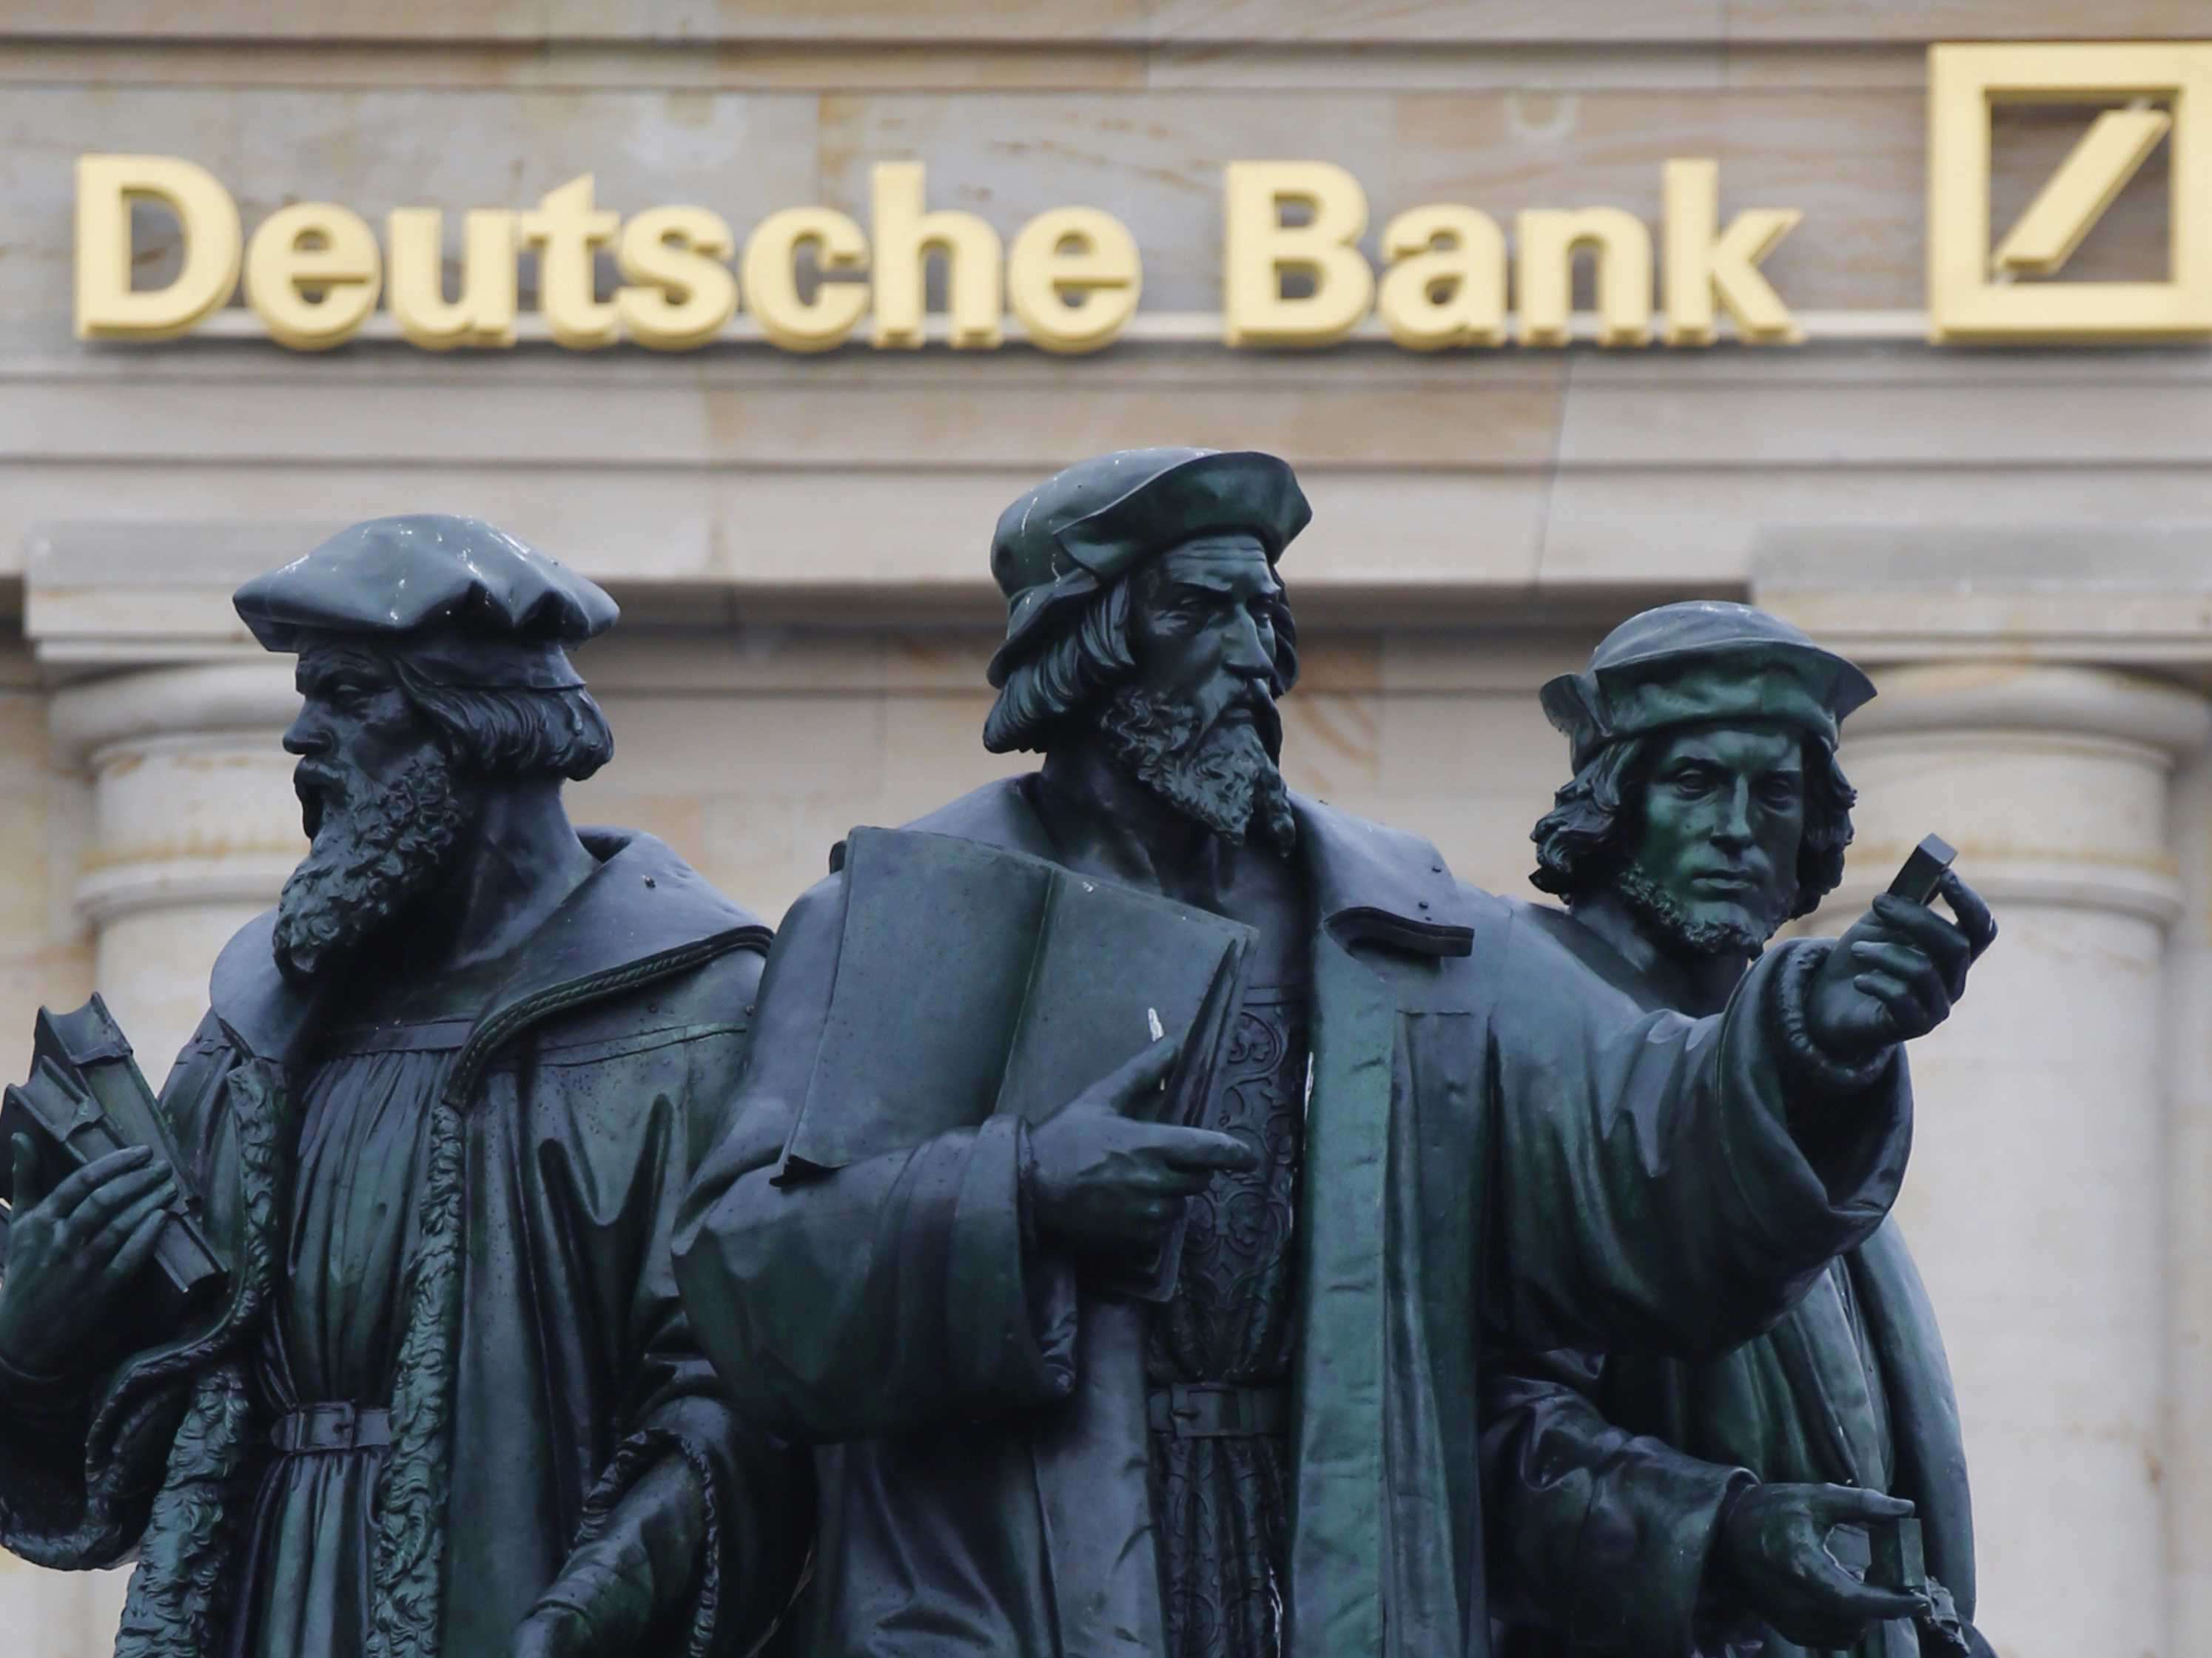 us-regulators-just-slapped-deutsche-bank-with-a-25-billion-fine-and-mocked-its-traders